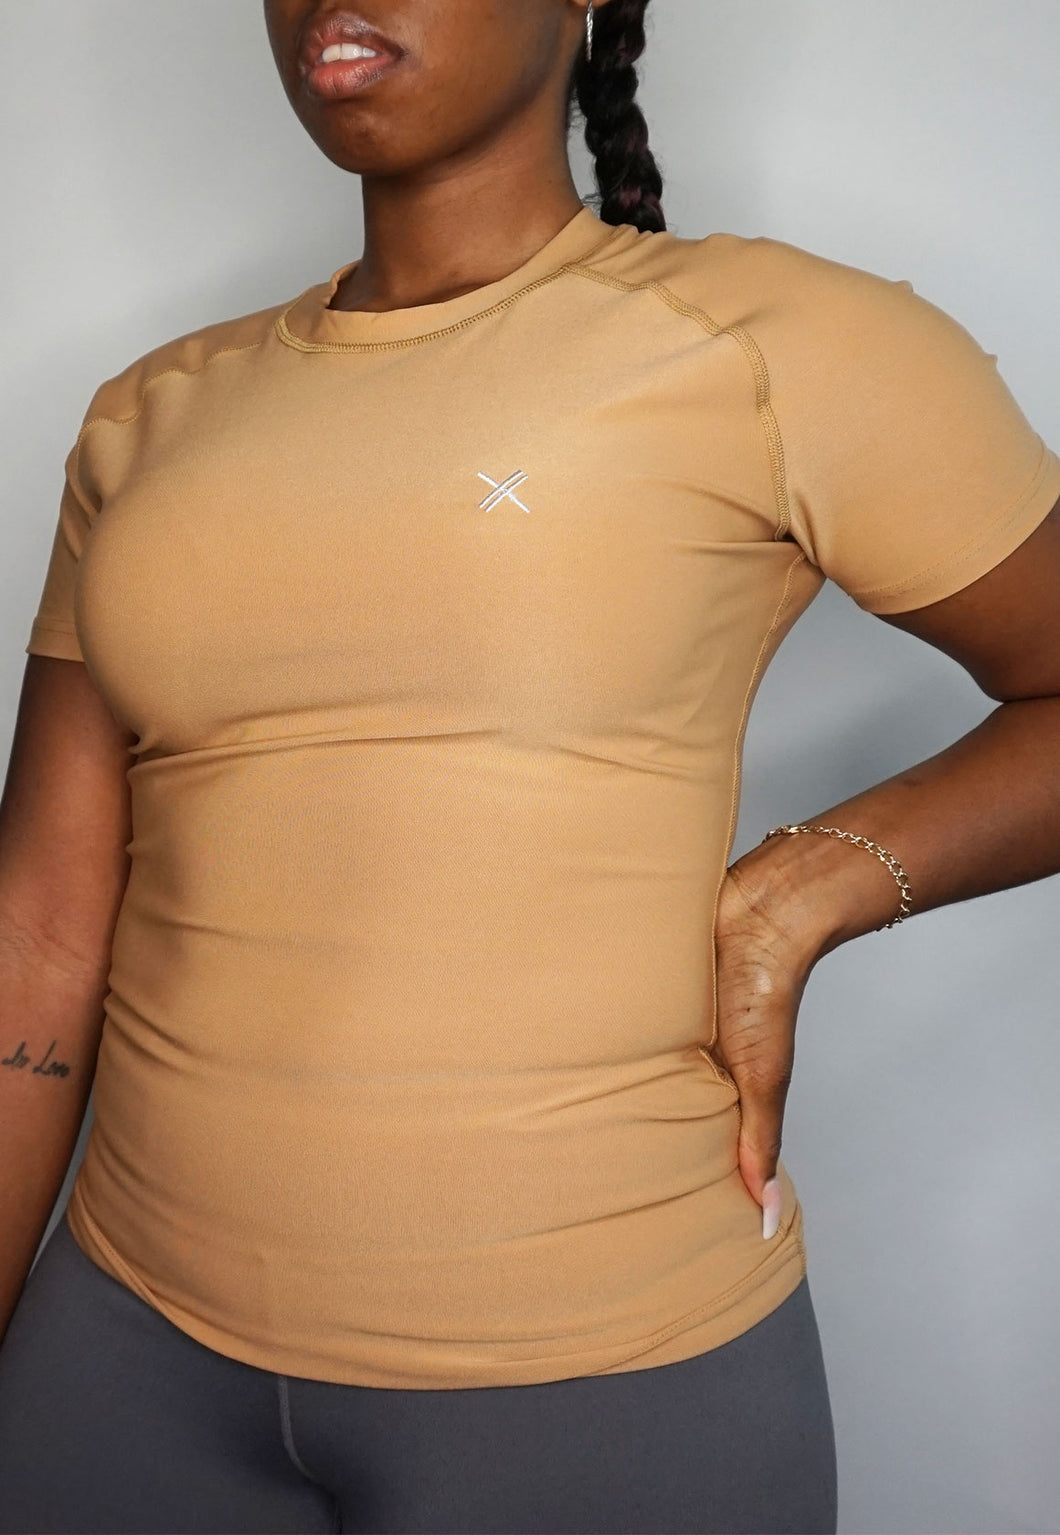 Womens - CLASSIC Sports Top - Nude - Tops - TWOTHREE